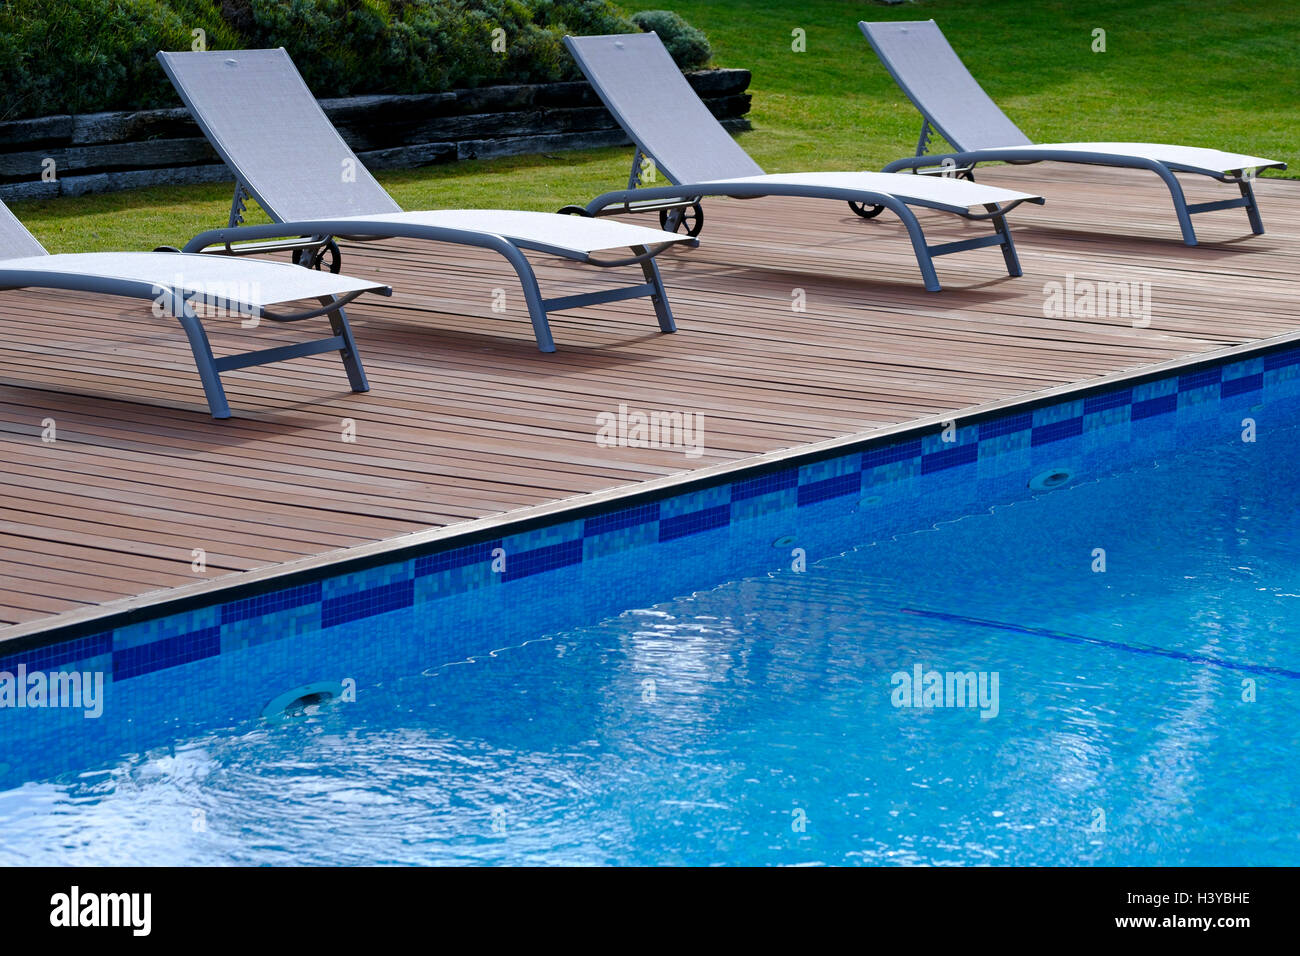 Lounge chairs on wooden deck next to an outdoor swimming ...